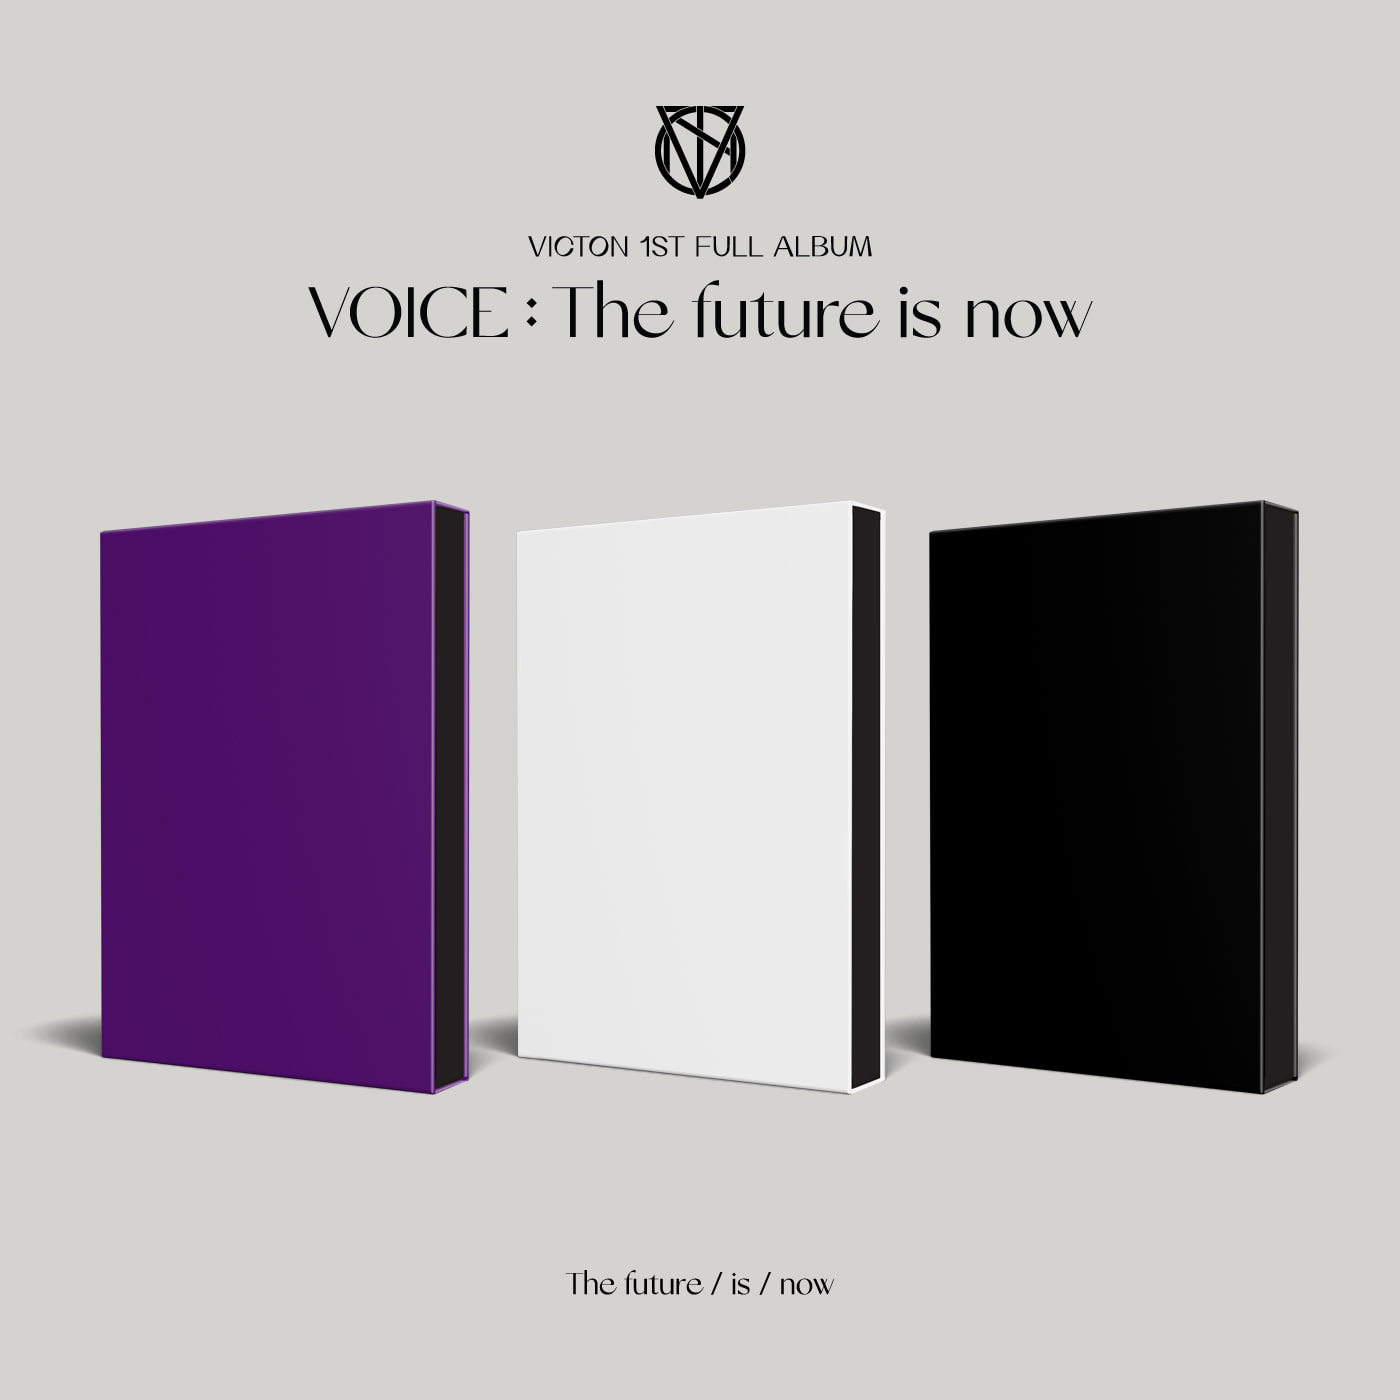 [PRE-ORDER] VICTON - Album Vol.1 [VOICE : The future is now] (The future ver.+ now ver.+is ver.)(3CD SET)케이팝스토어(kpop store)